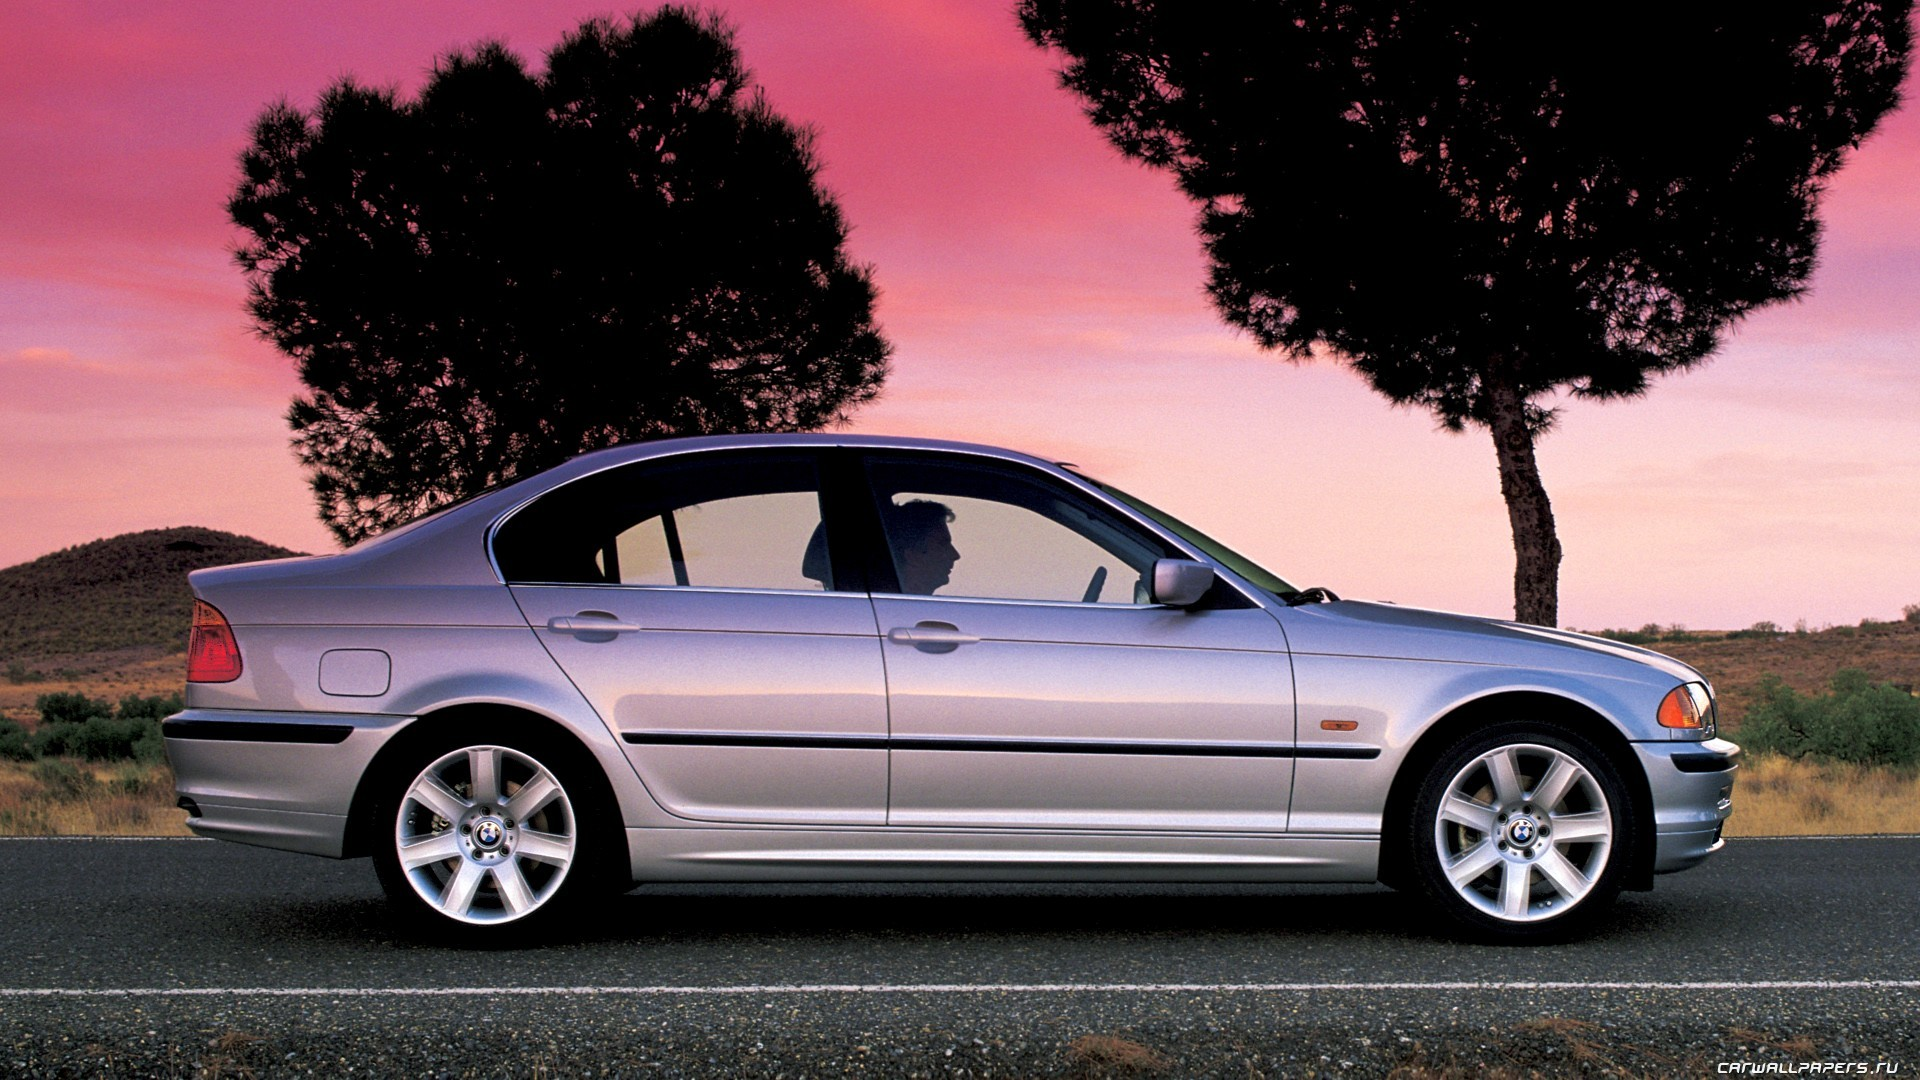 Bmw e46 wallpaper 69 images 1920x1080 bmw e46 m3 gtr hd 4k 8k wallpapers voltagebd Gallery